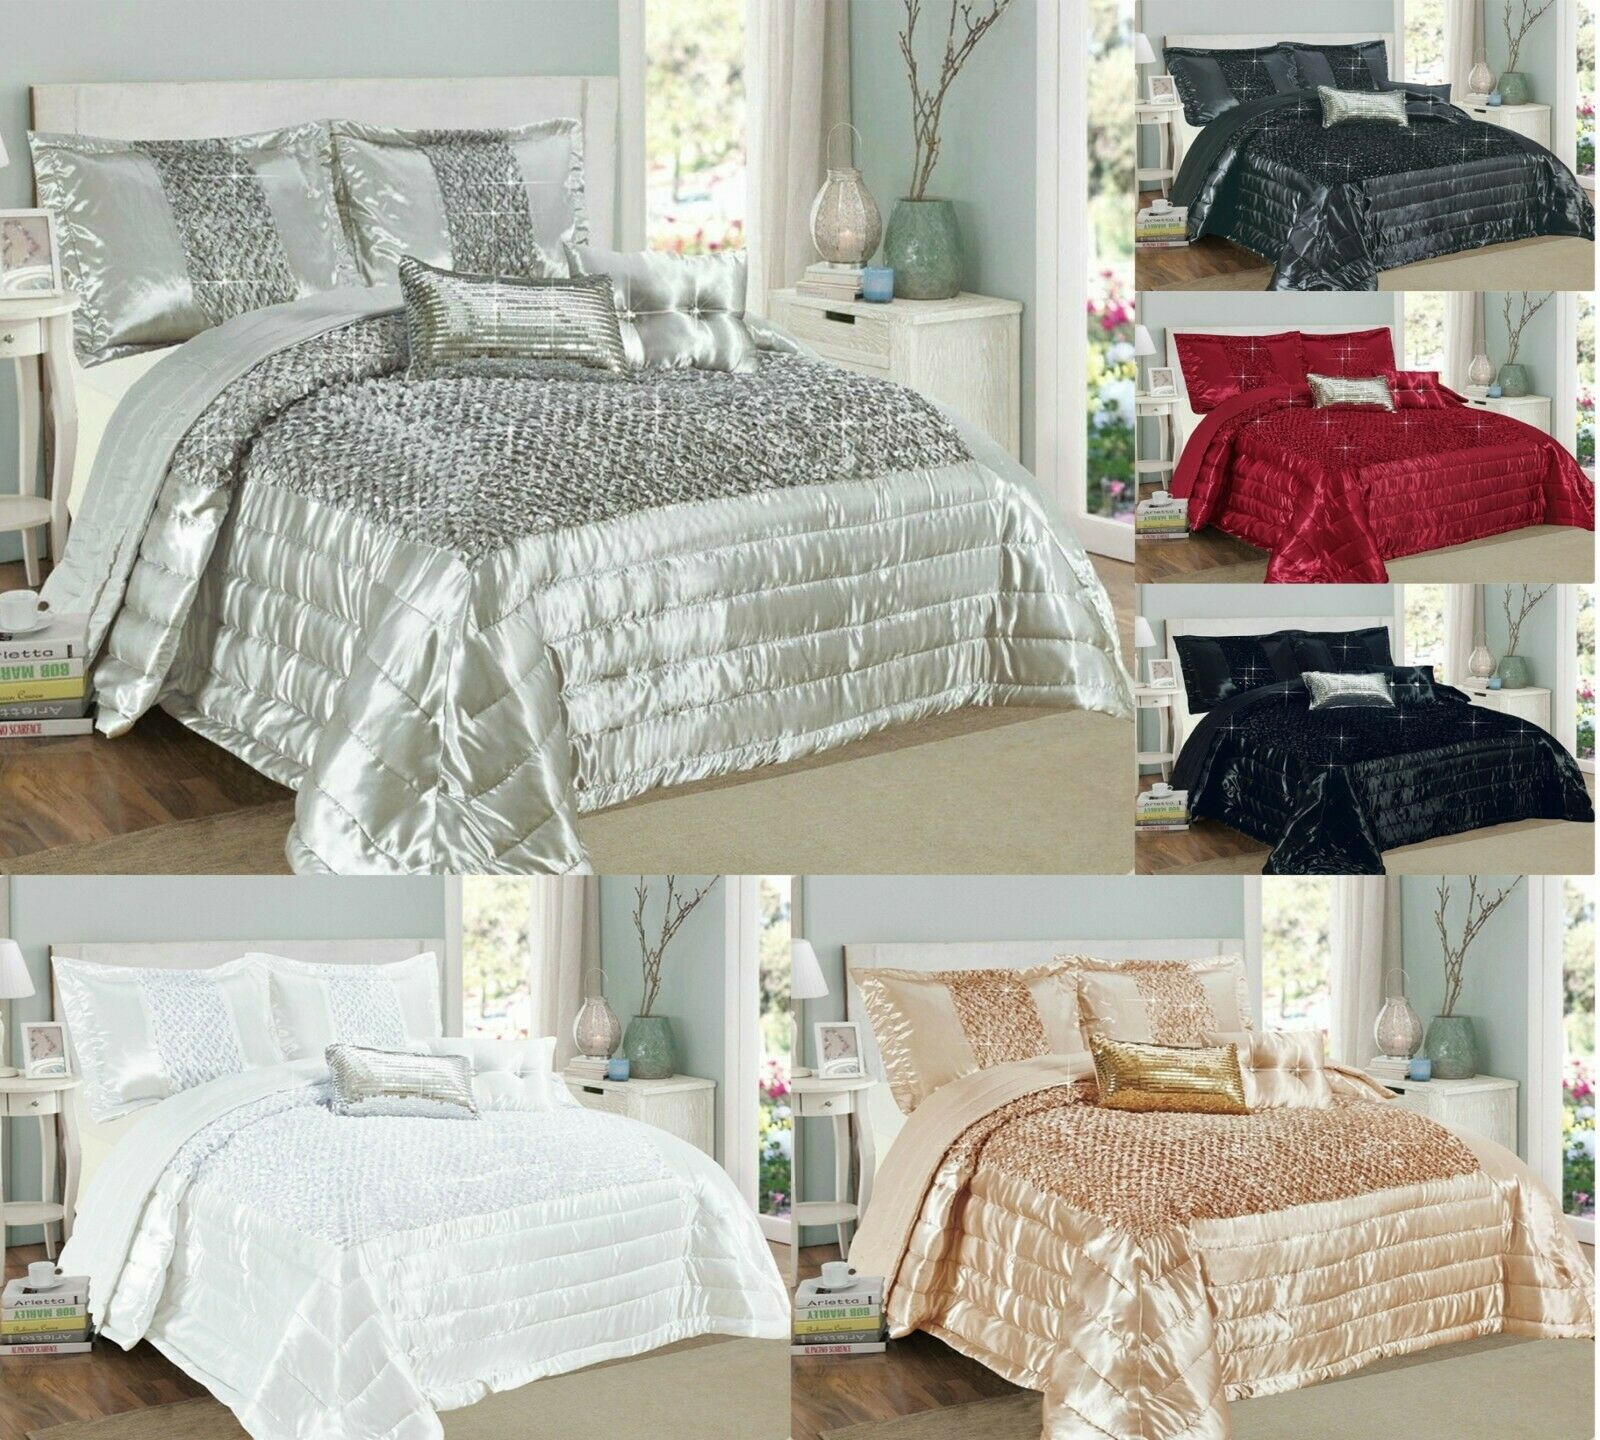 3 Pcs Bedspread Quilted Sequins With 2 Pillow Shams Double King Sup-King